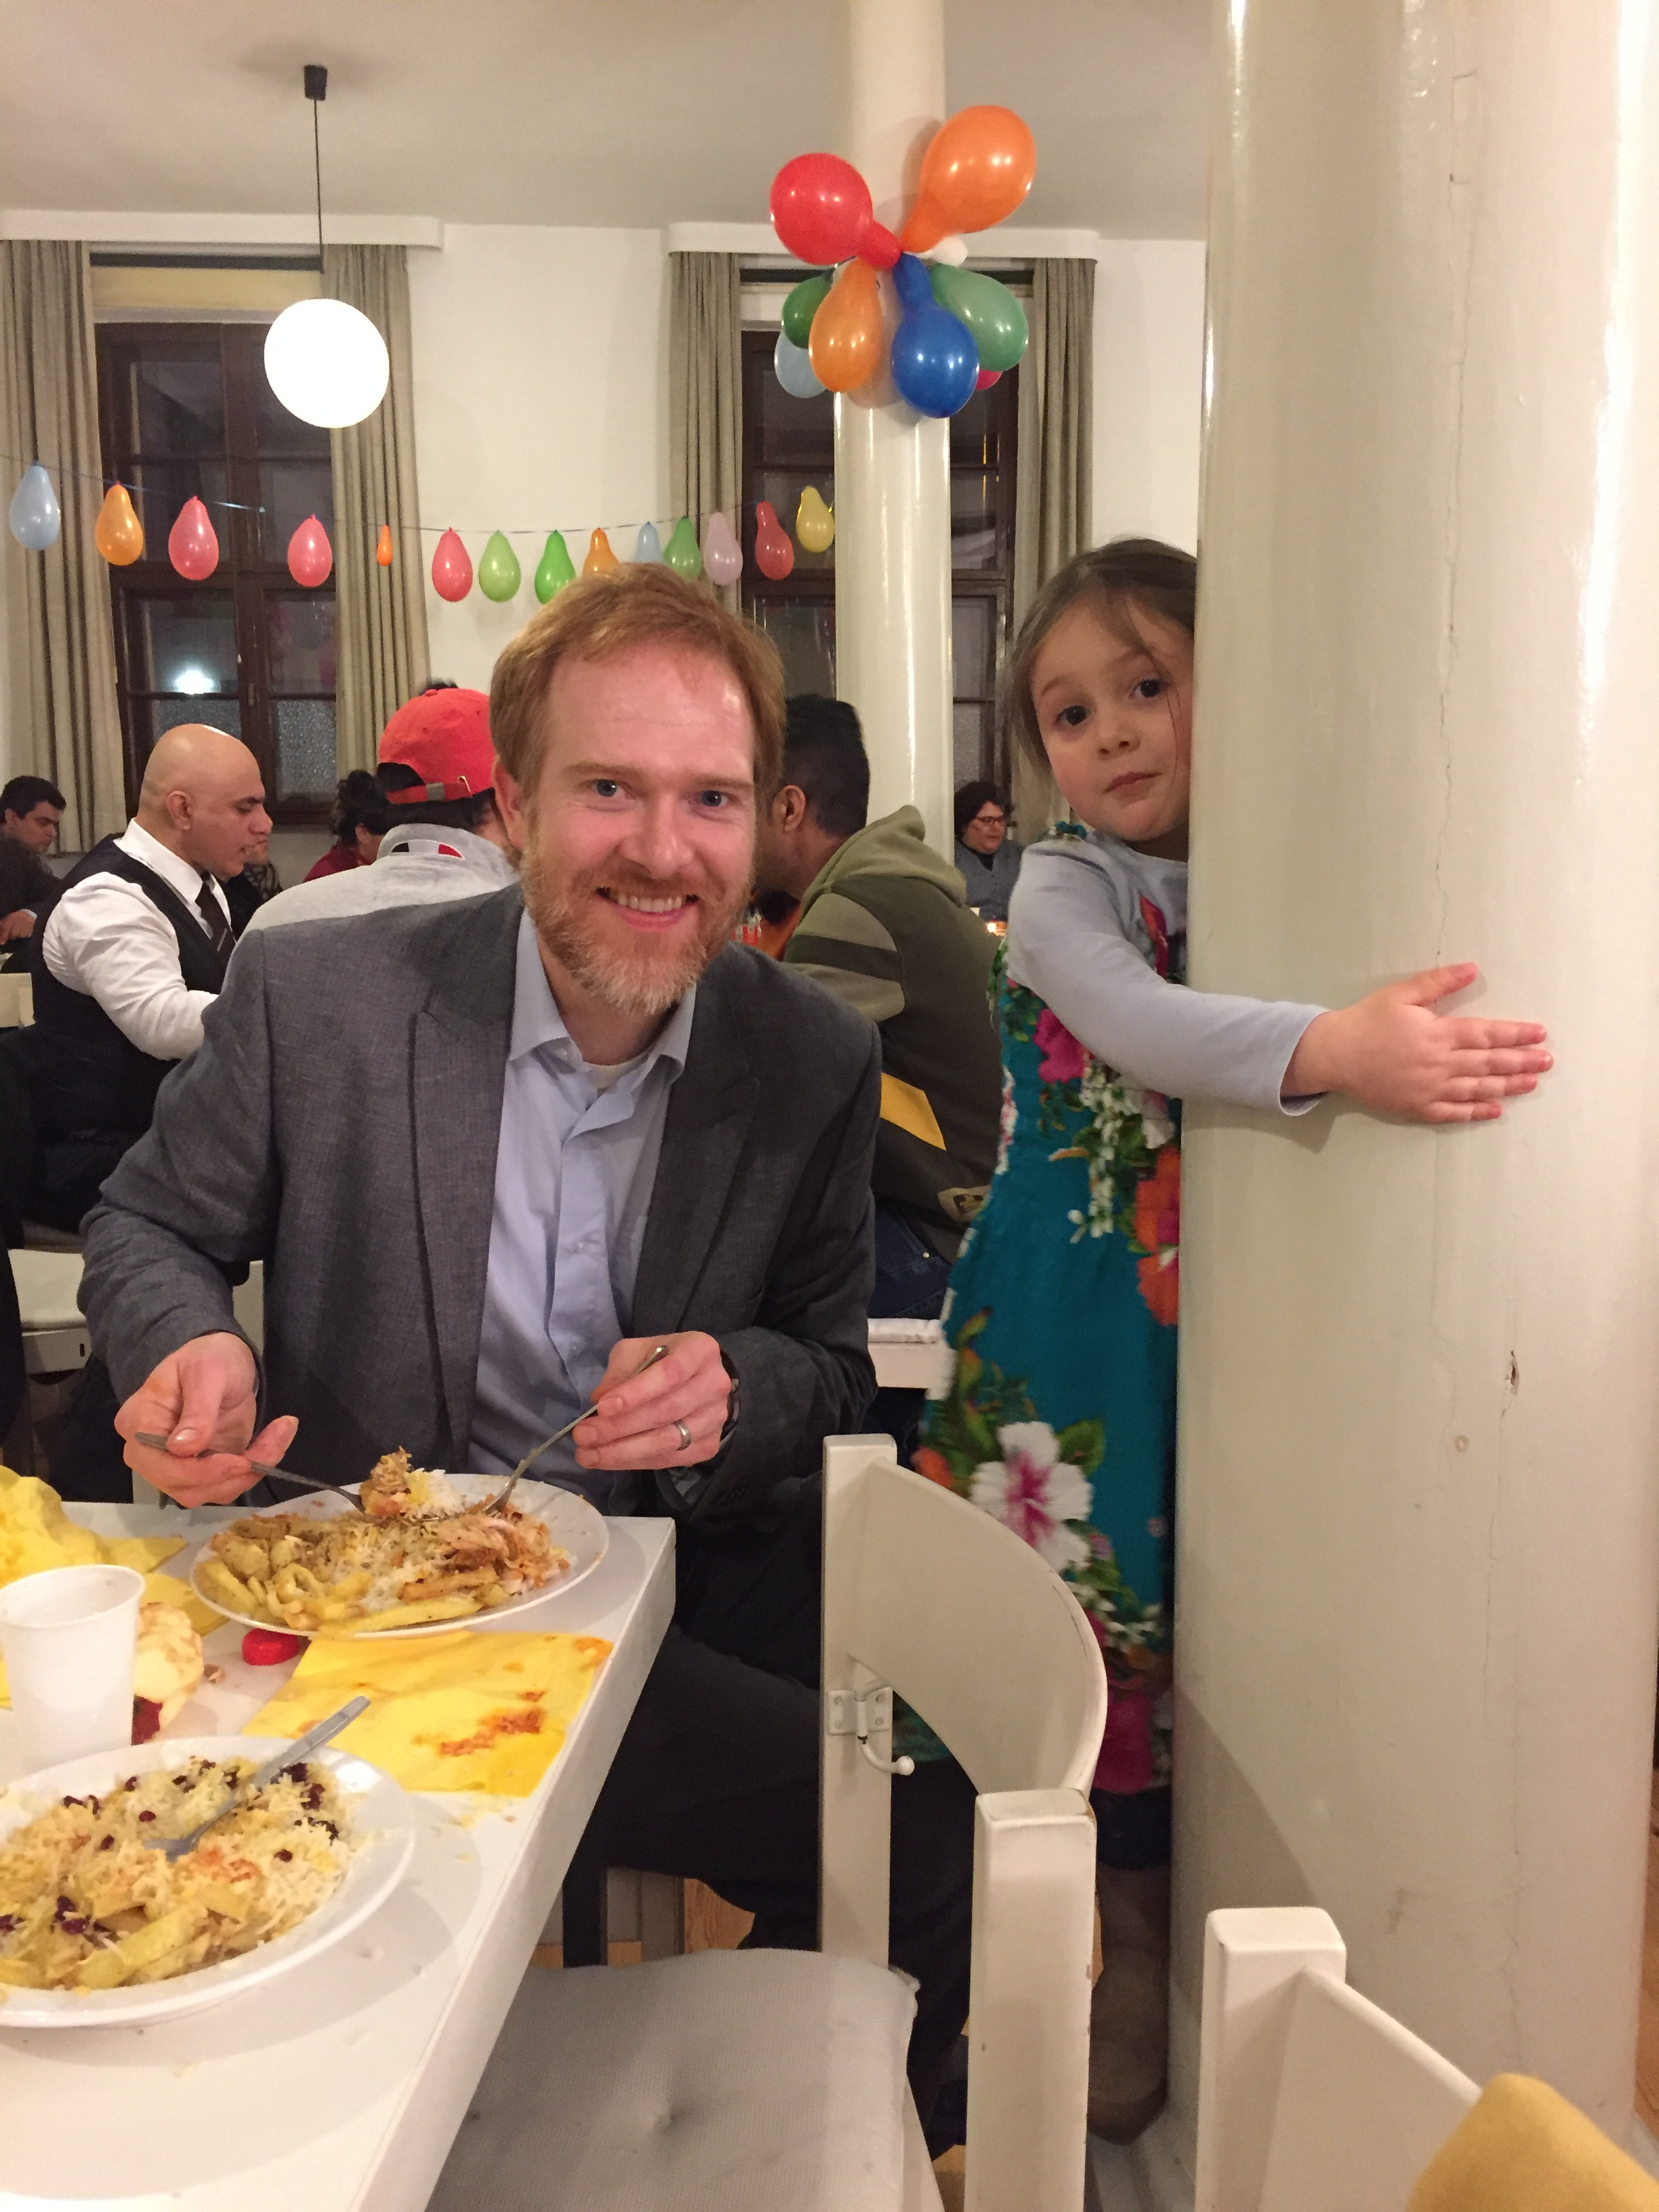 Ryan and Laila enjoying dinner during Nowruz.